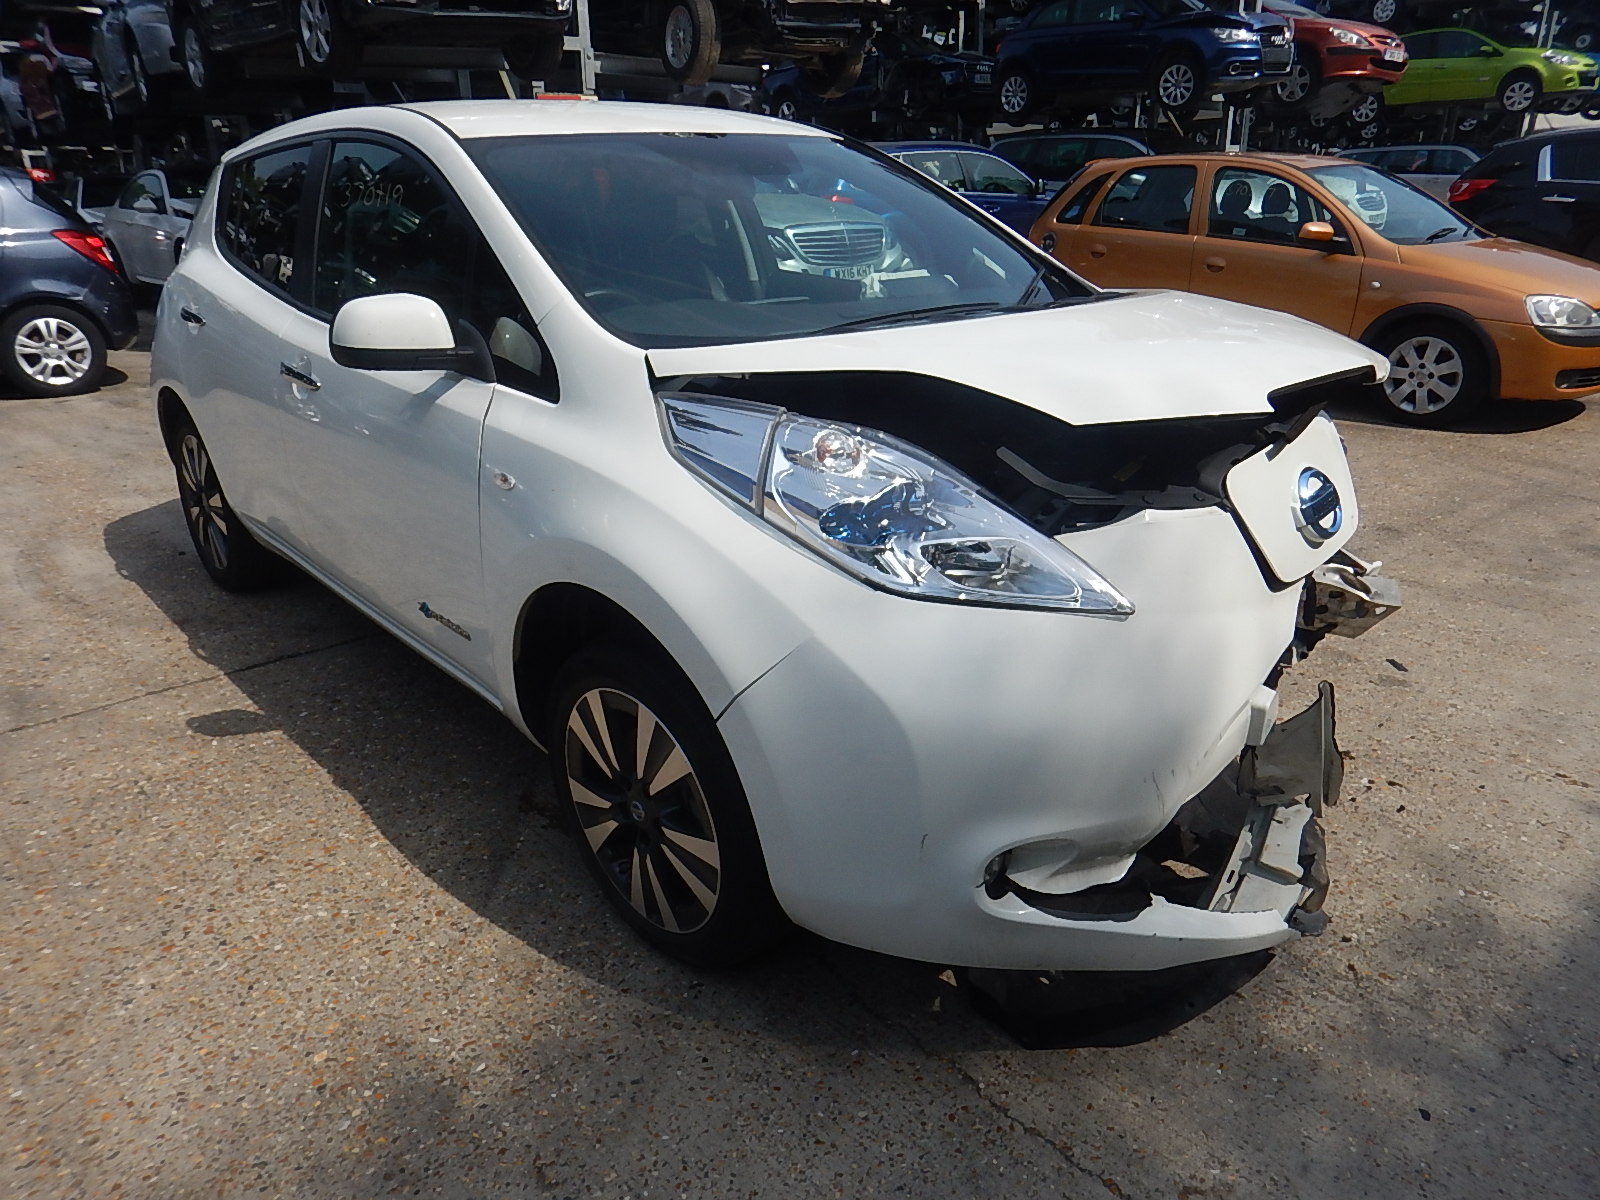 nissan classifieds cars entry auto acenta leaf keyless bluetooth used al price charger